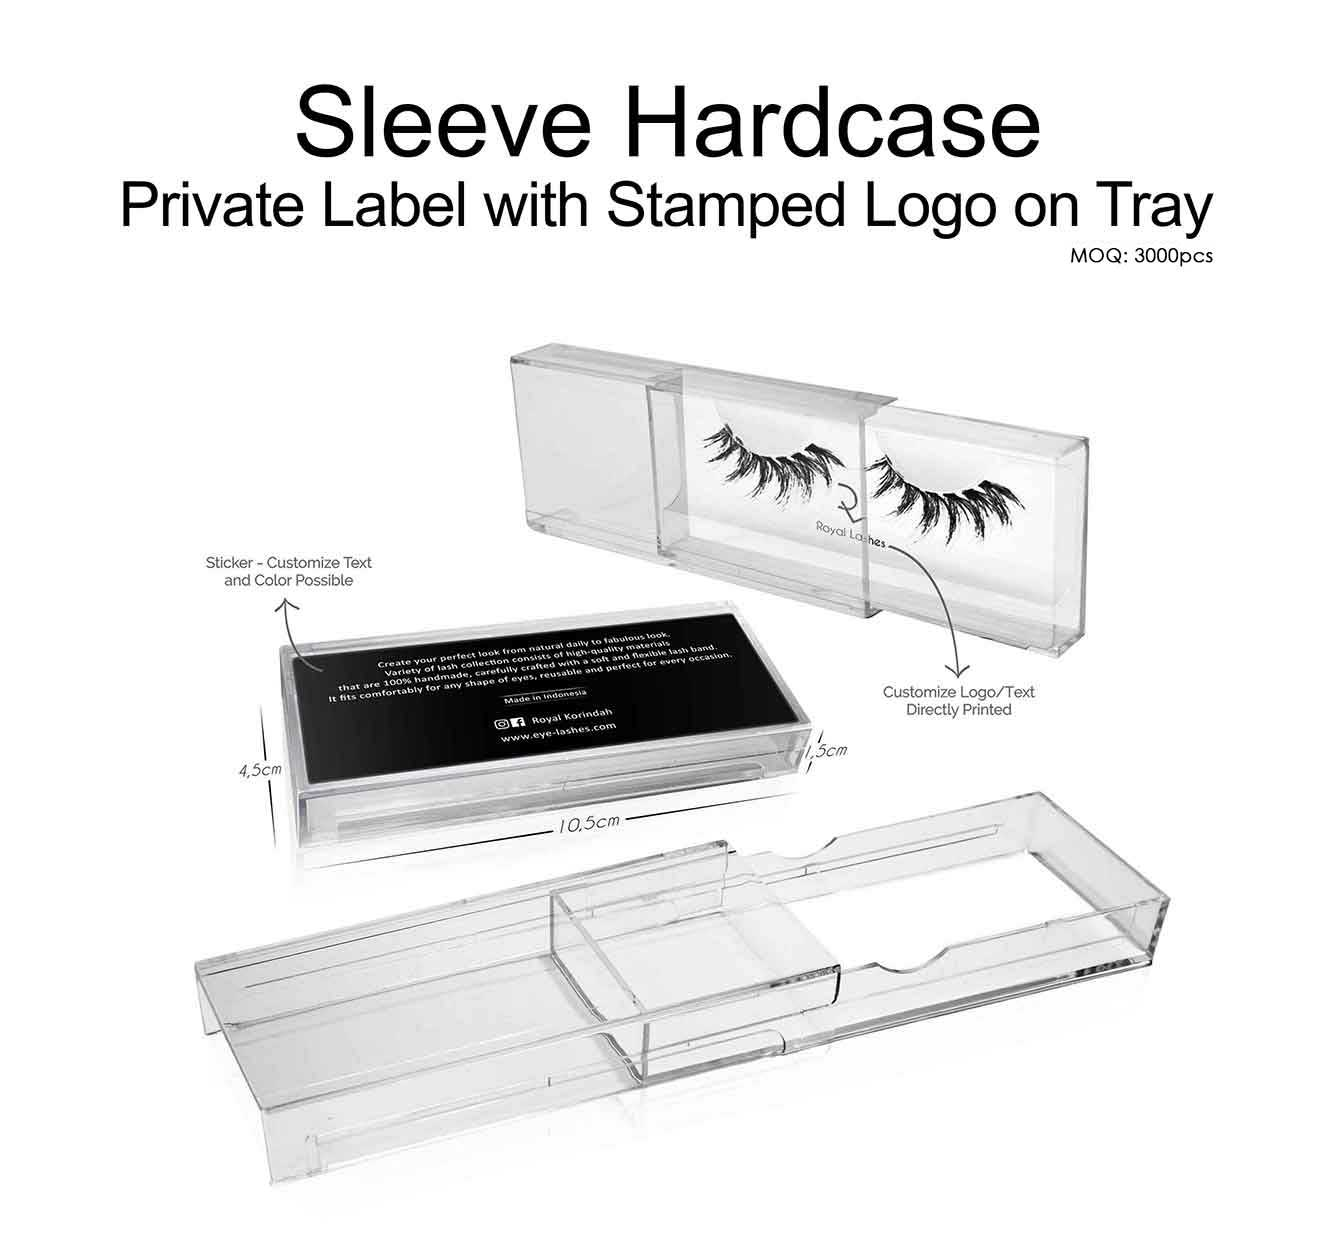 Sleeve-Hardcase-Private-Label-with-Stamped-Logo-on-Tray-moq3000